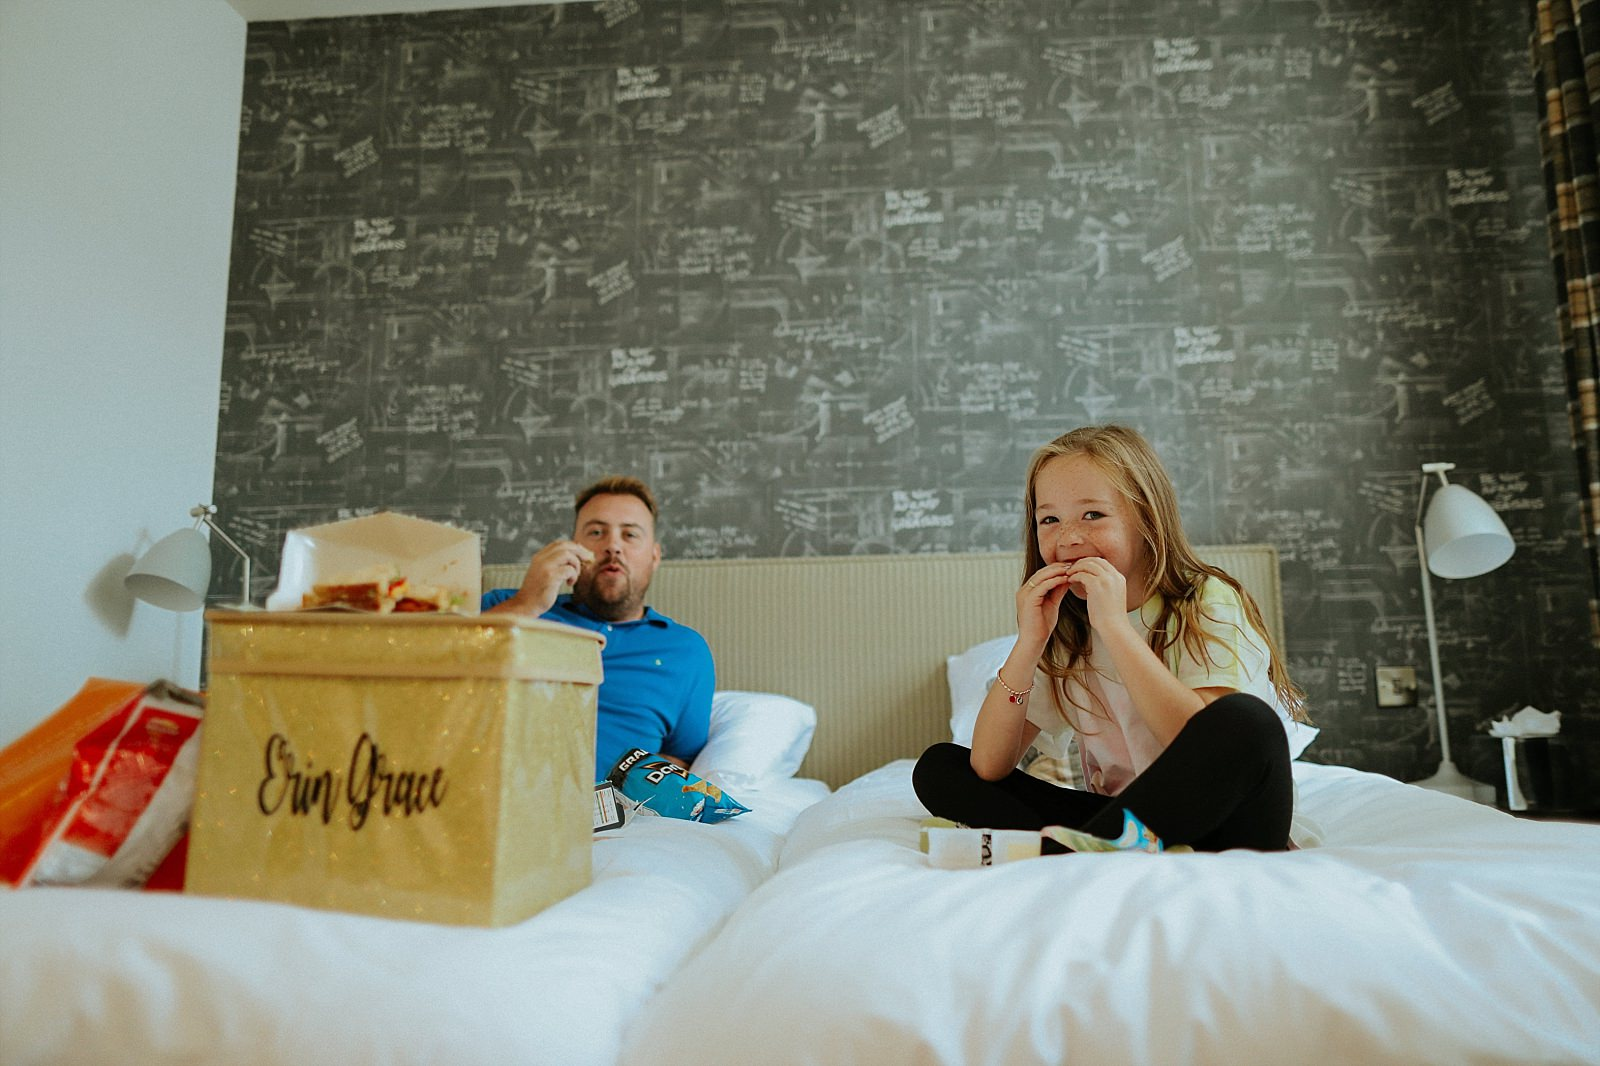 Girl on bed eating a sandwich